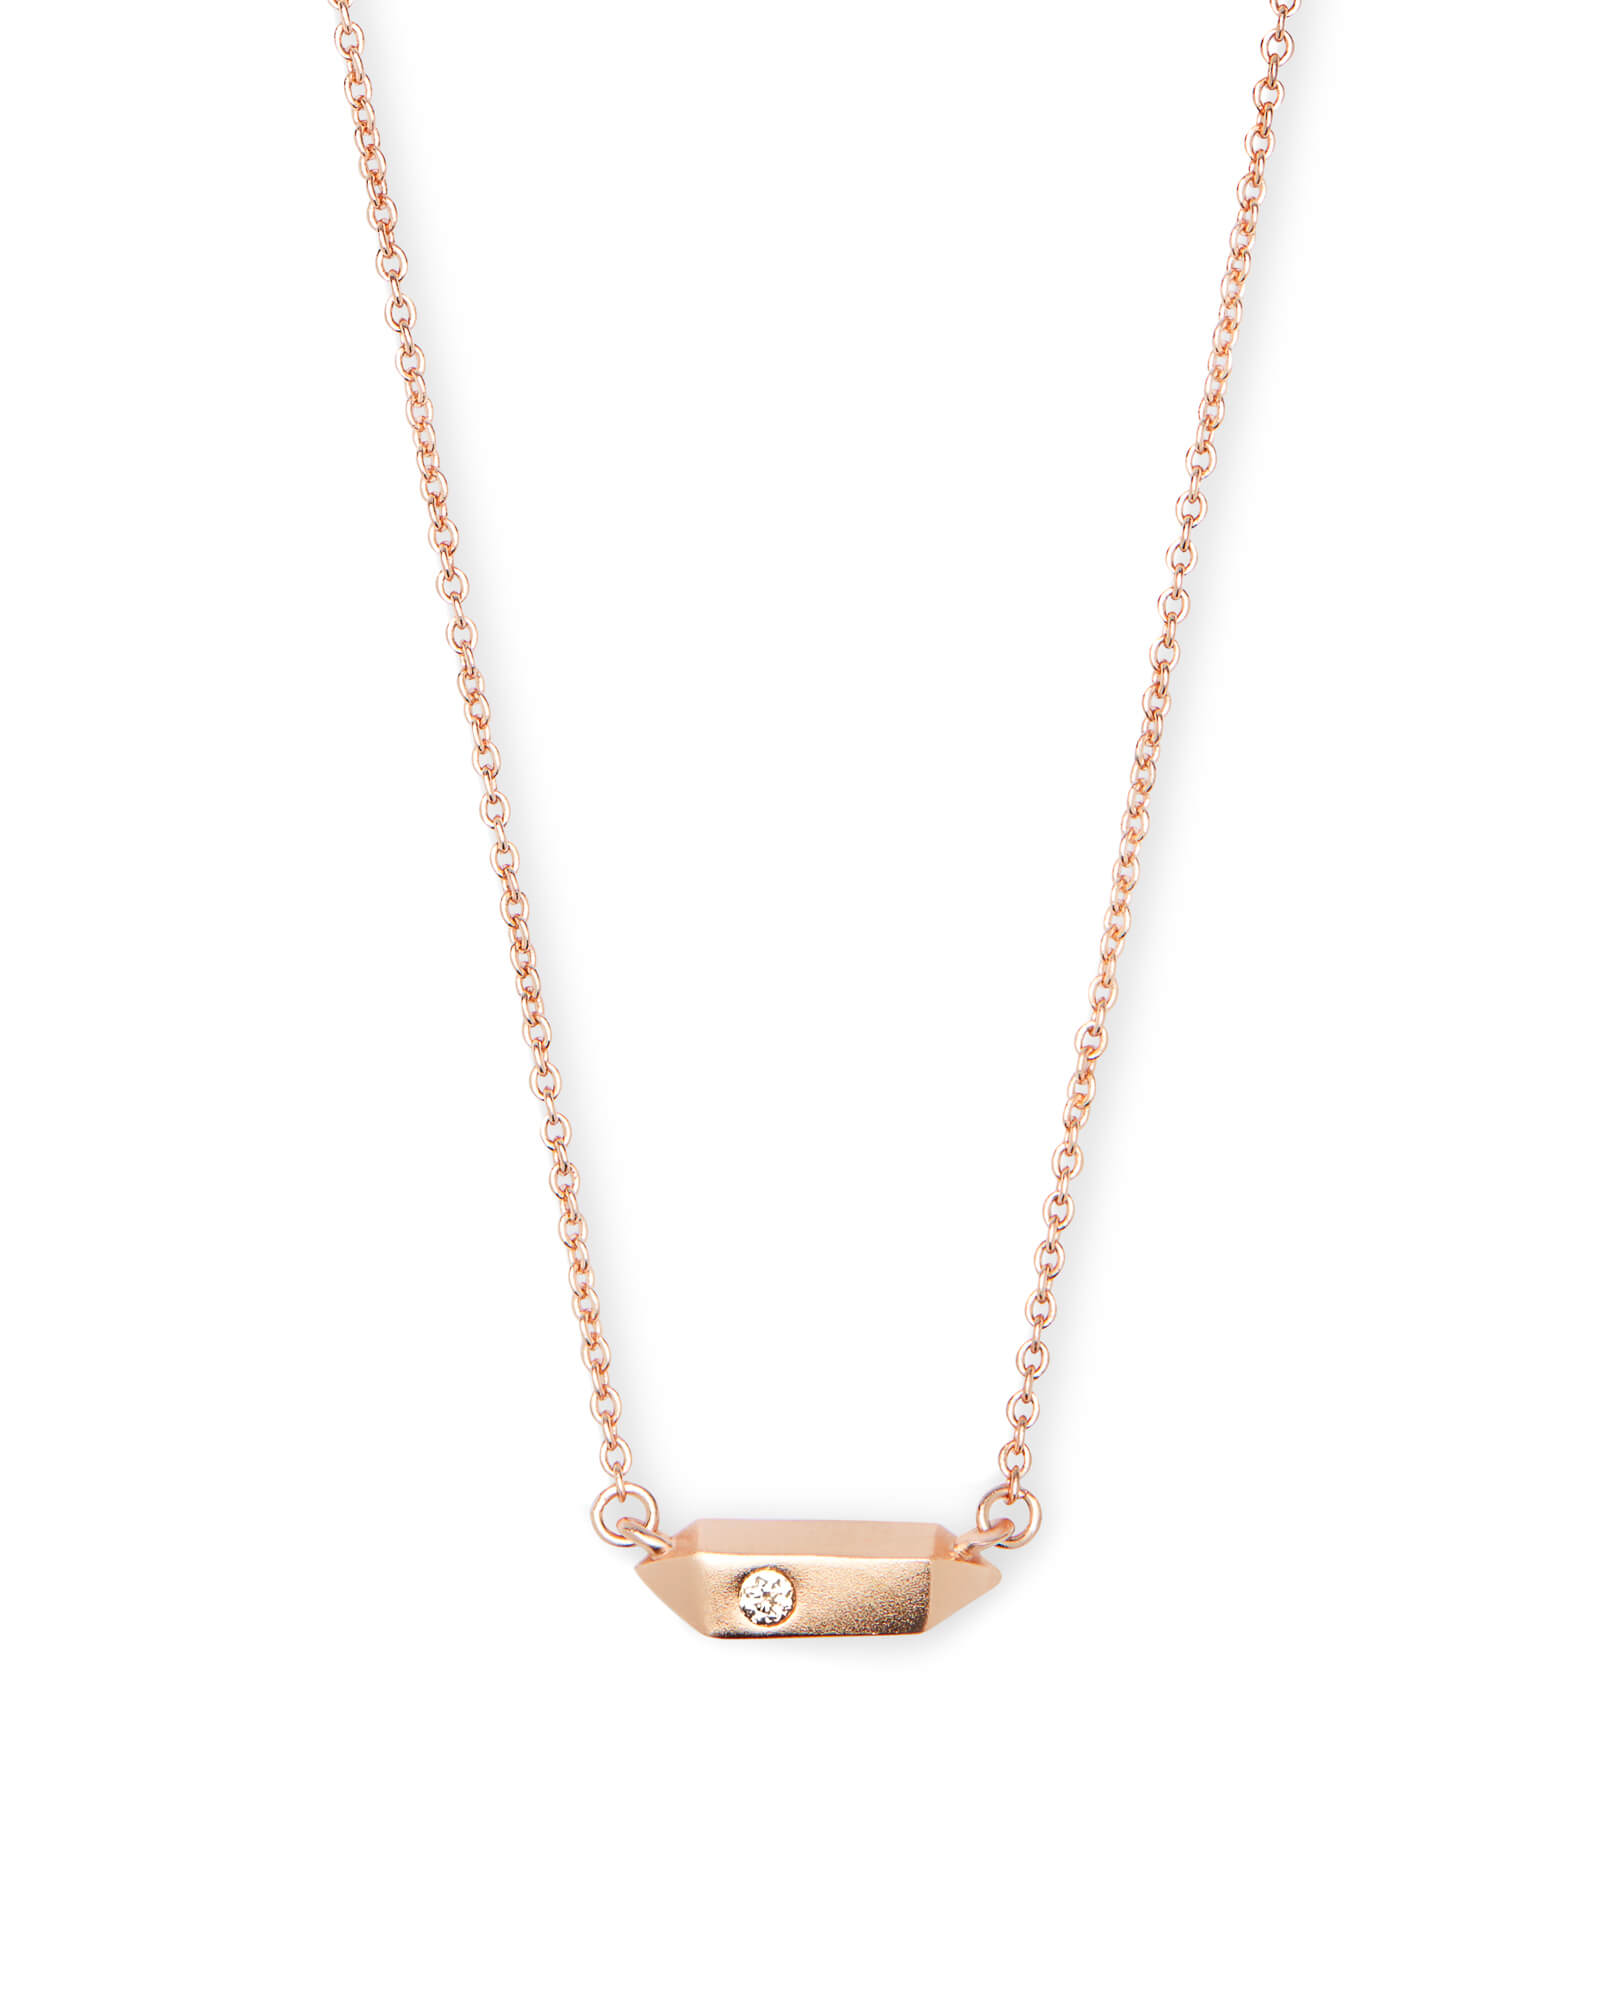 Charly Pendant Necklace in Rose Gold